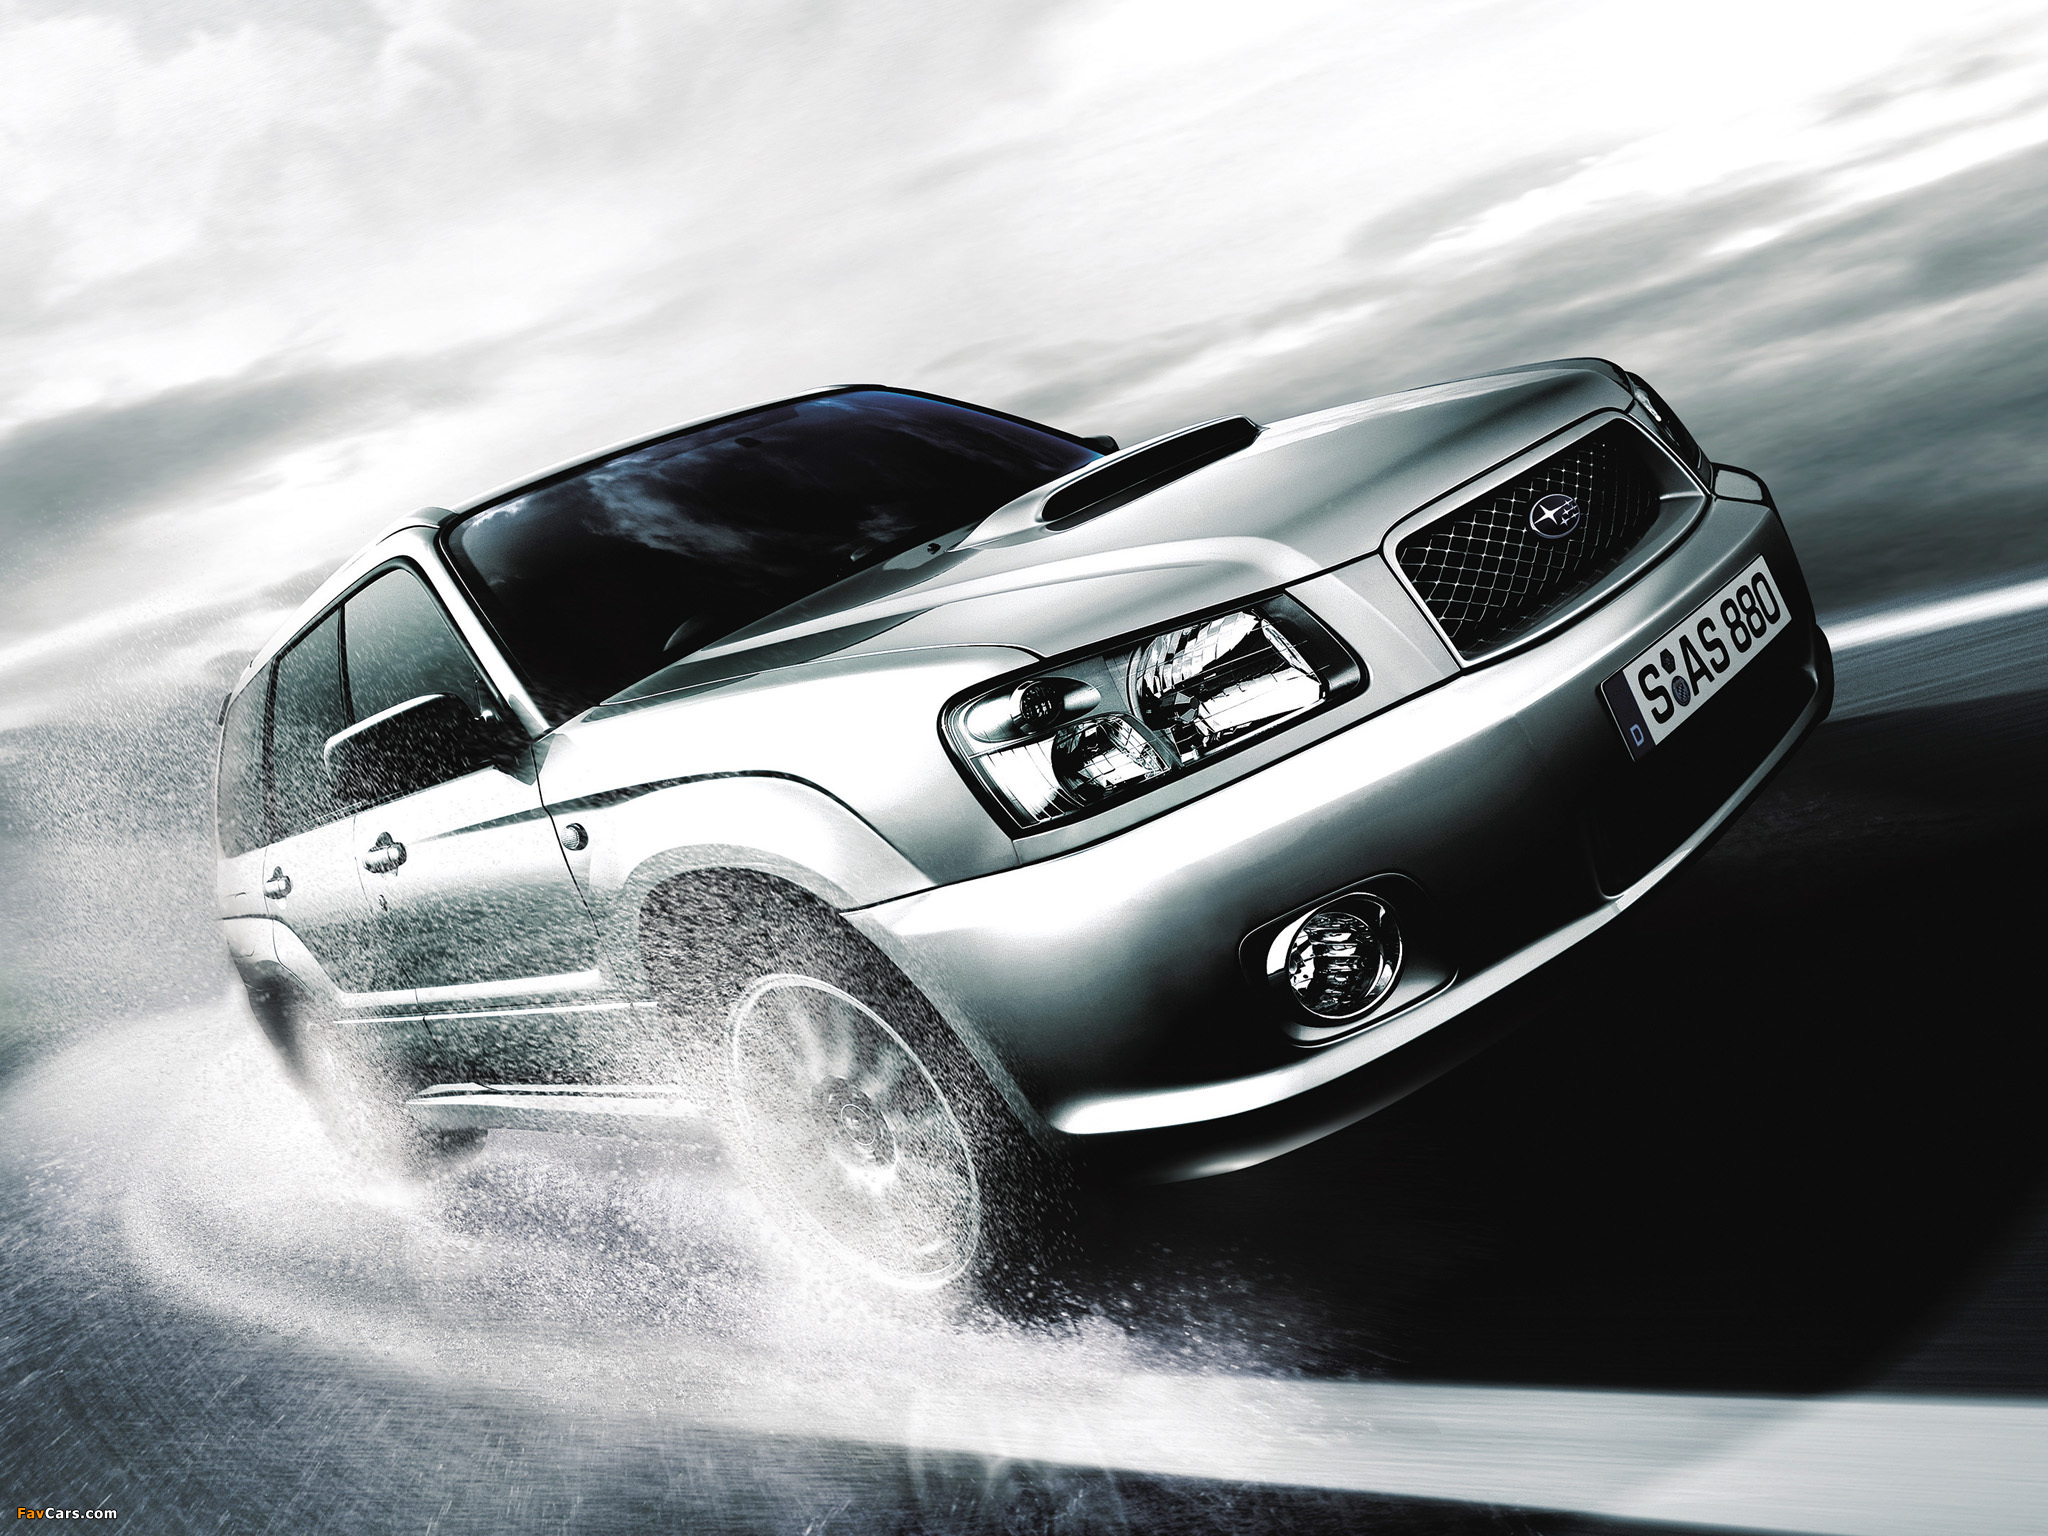 2048x1536 - Subaru Forester Wallpapers 26